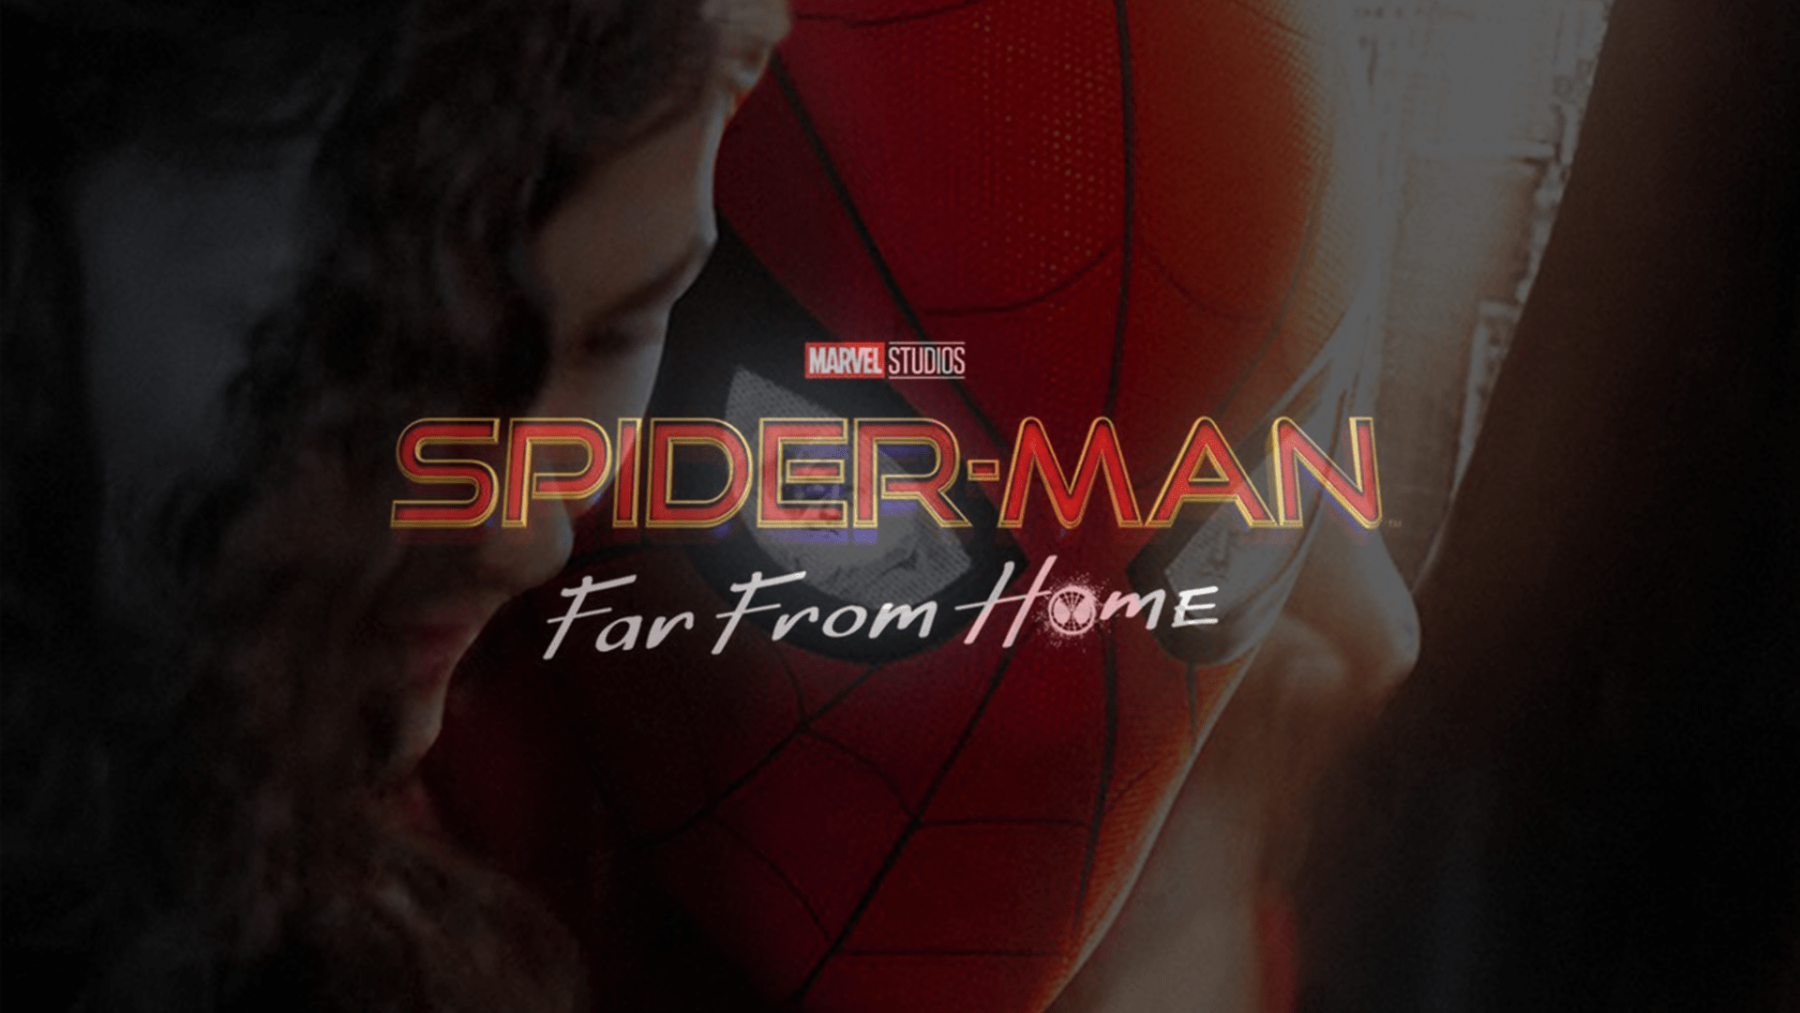 Spider-Man: Far From Home HD Wallpapers | 7wallpapers net